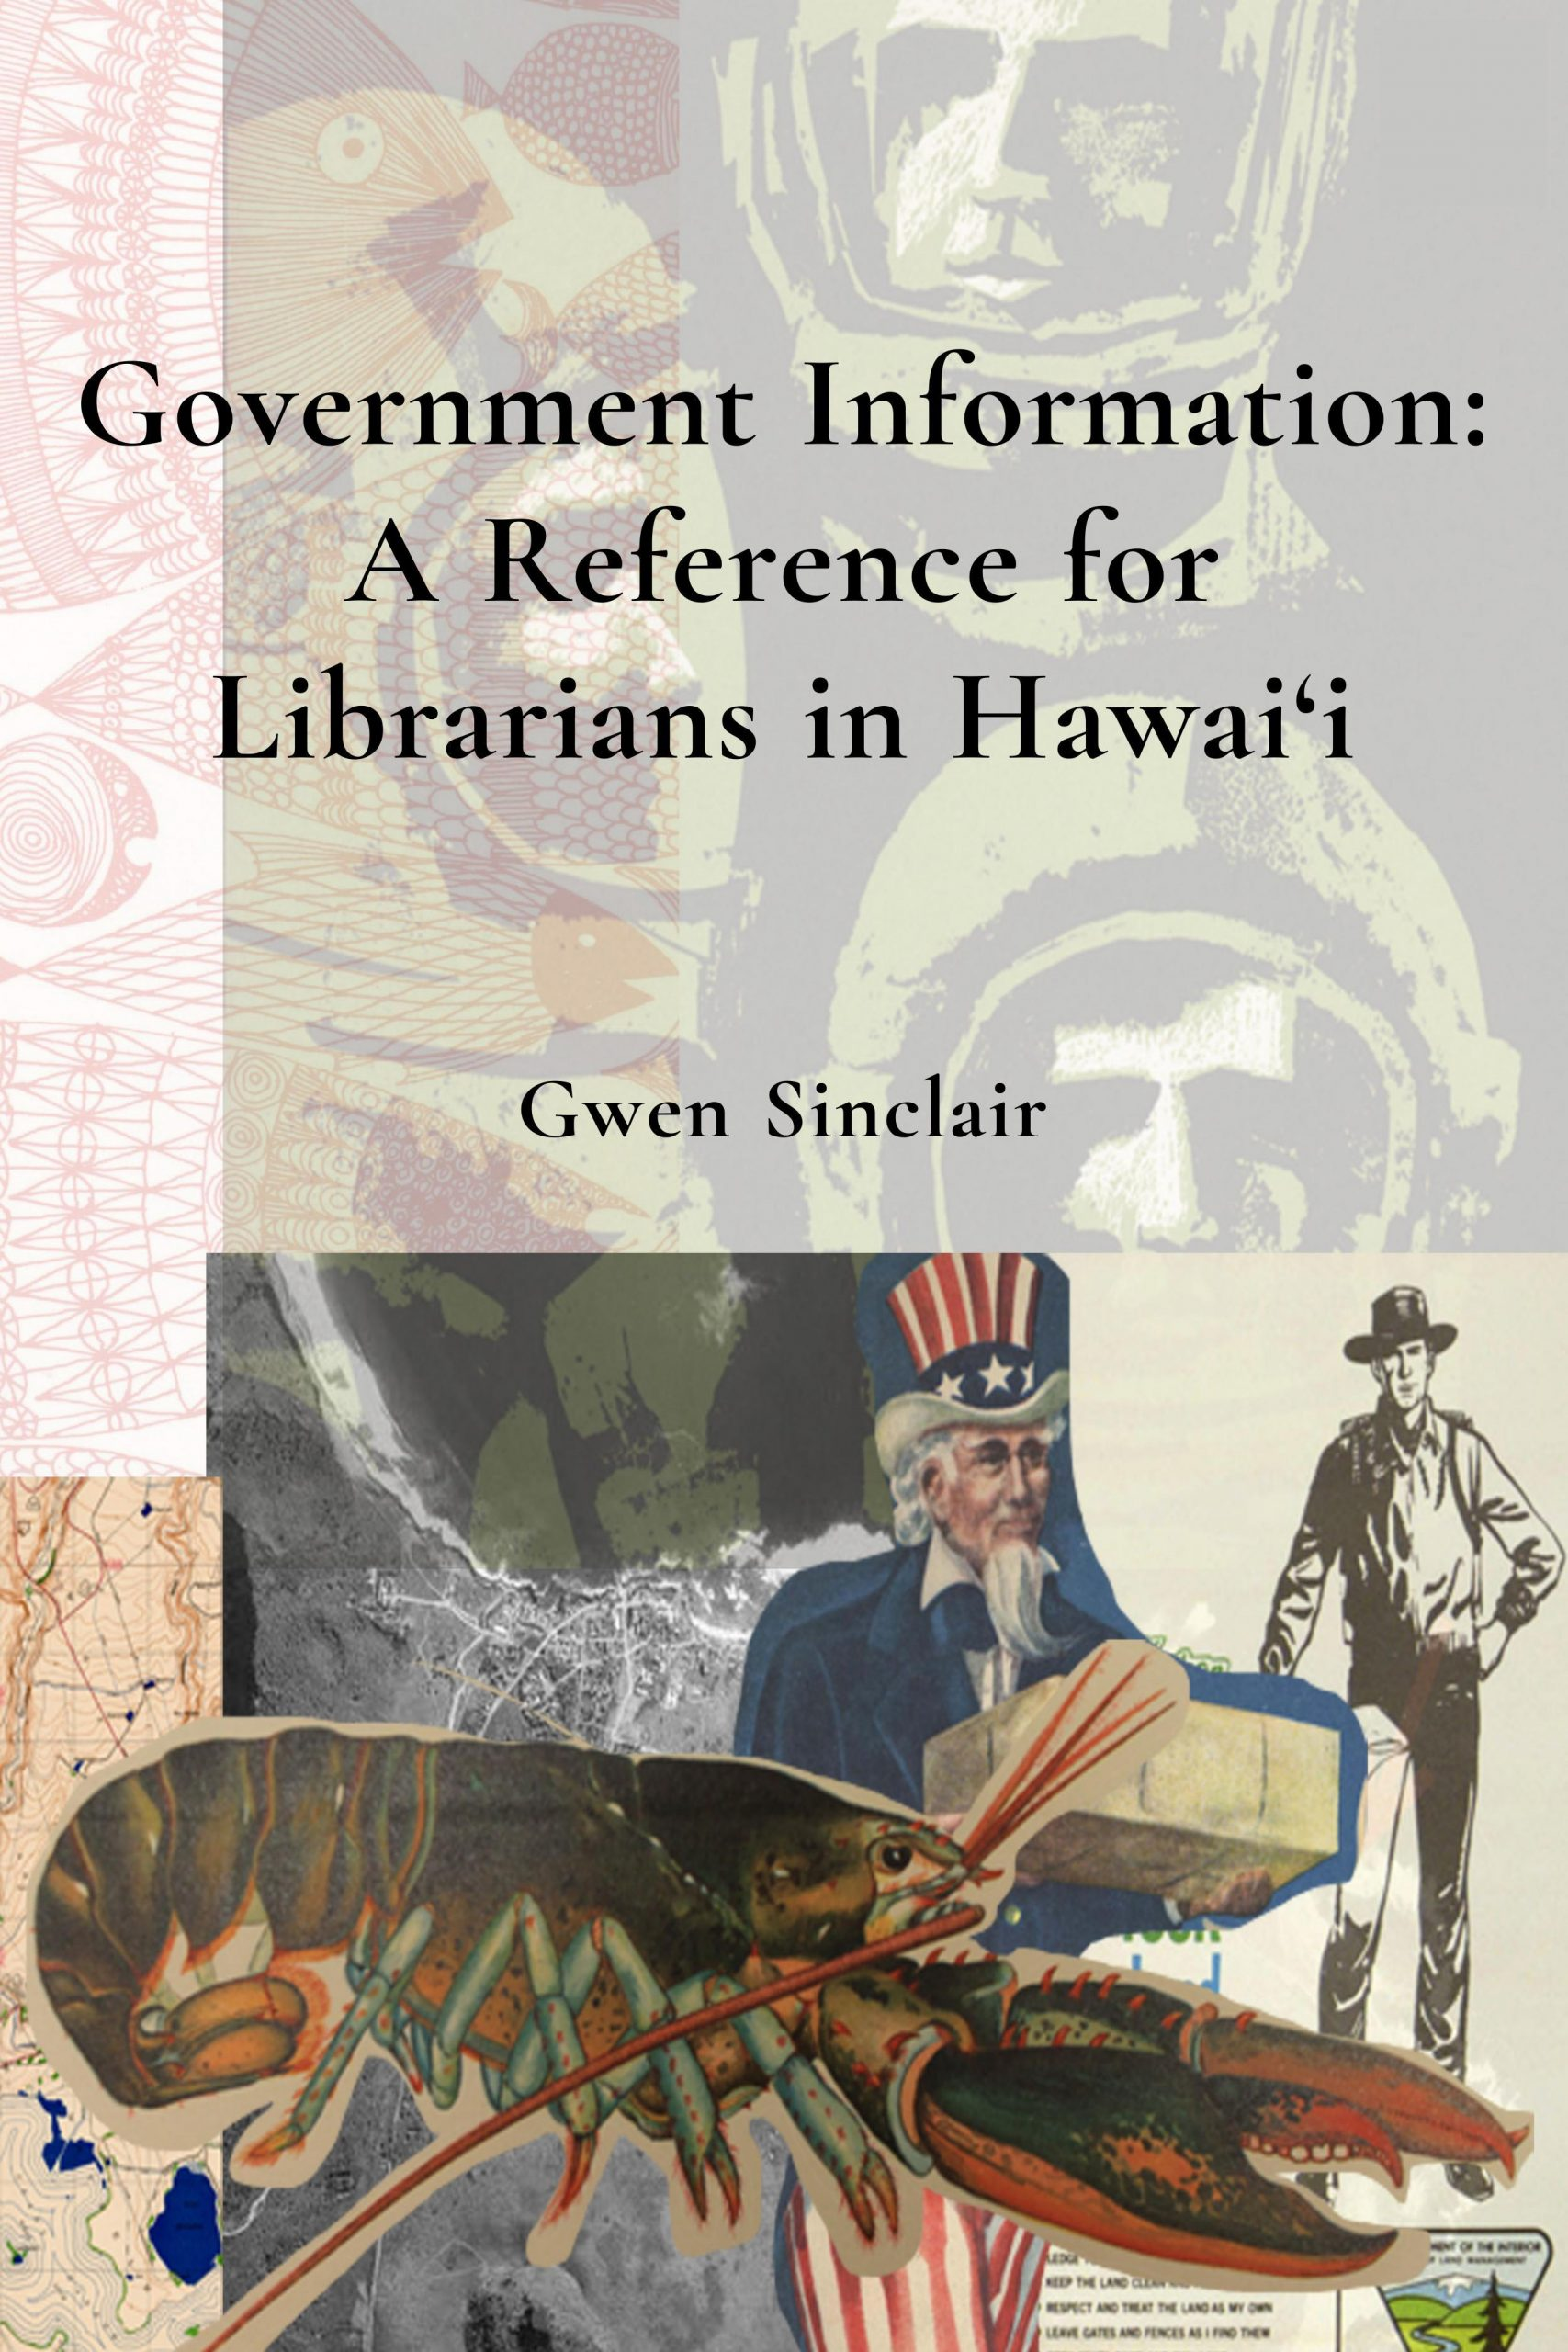 Government Information: A Reference for Librarians in Hawai'i